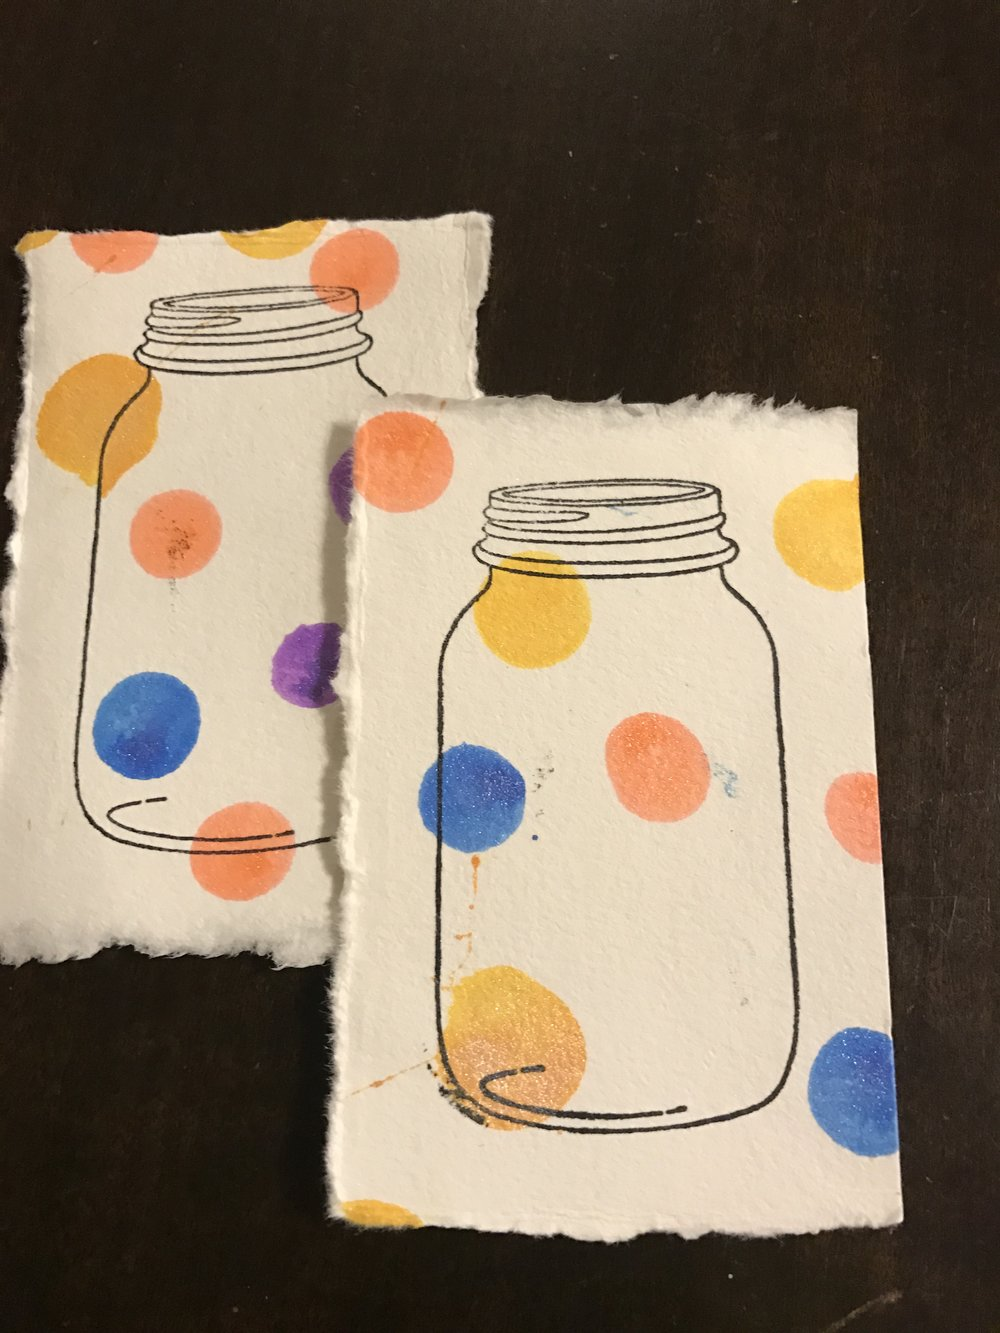 Embellish - Add a stamp to each one to create a writing space for your card. We liked the jar stamp because it was larger, but can be anything! Children love stamping! Show them how to ink the stamp and then press once for the clearest images!